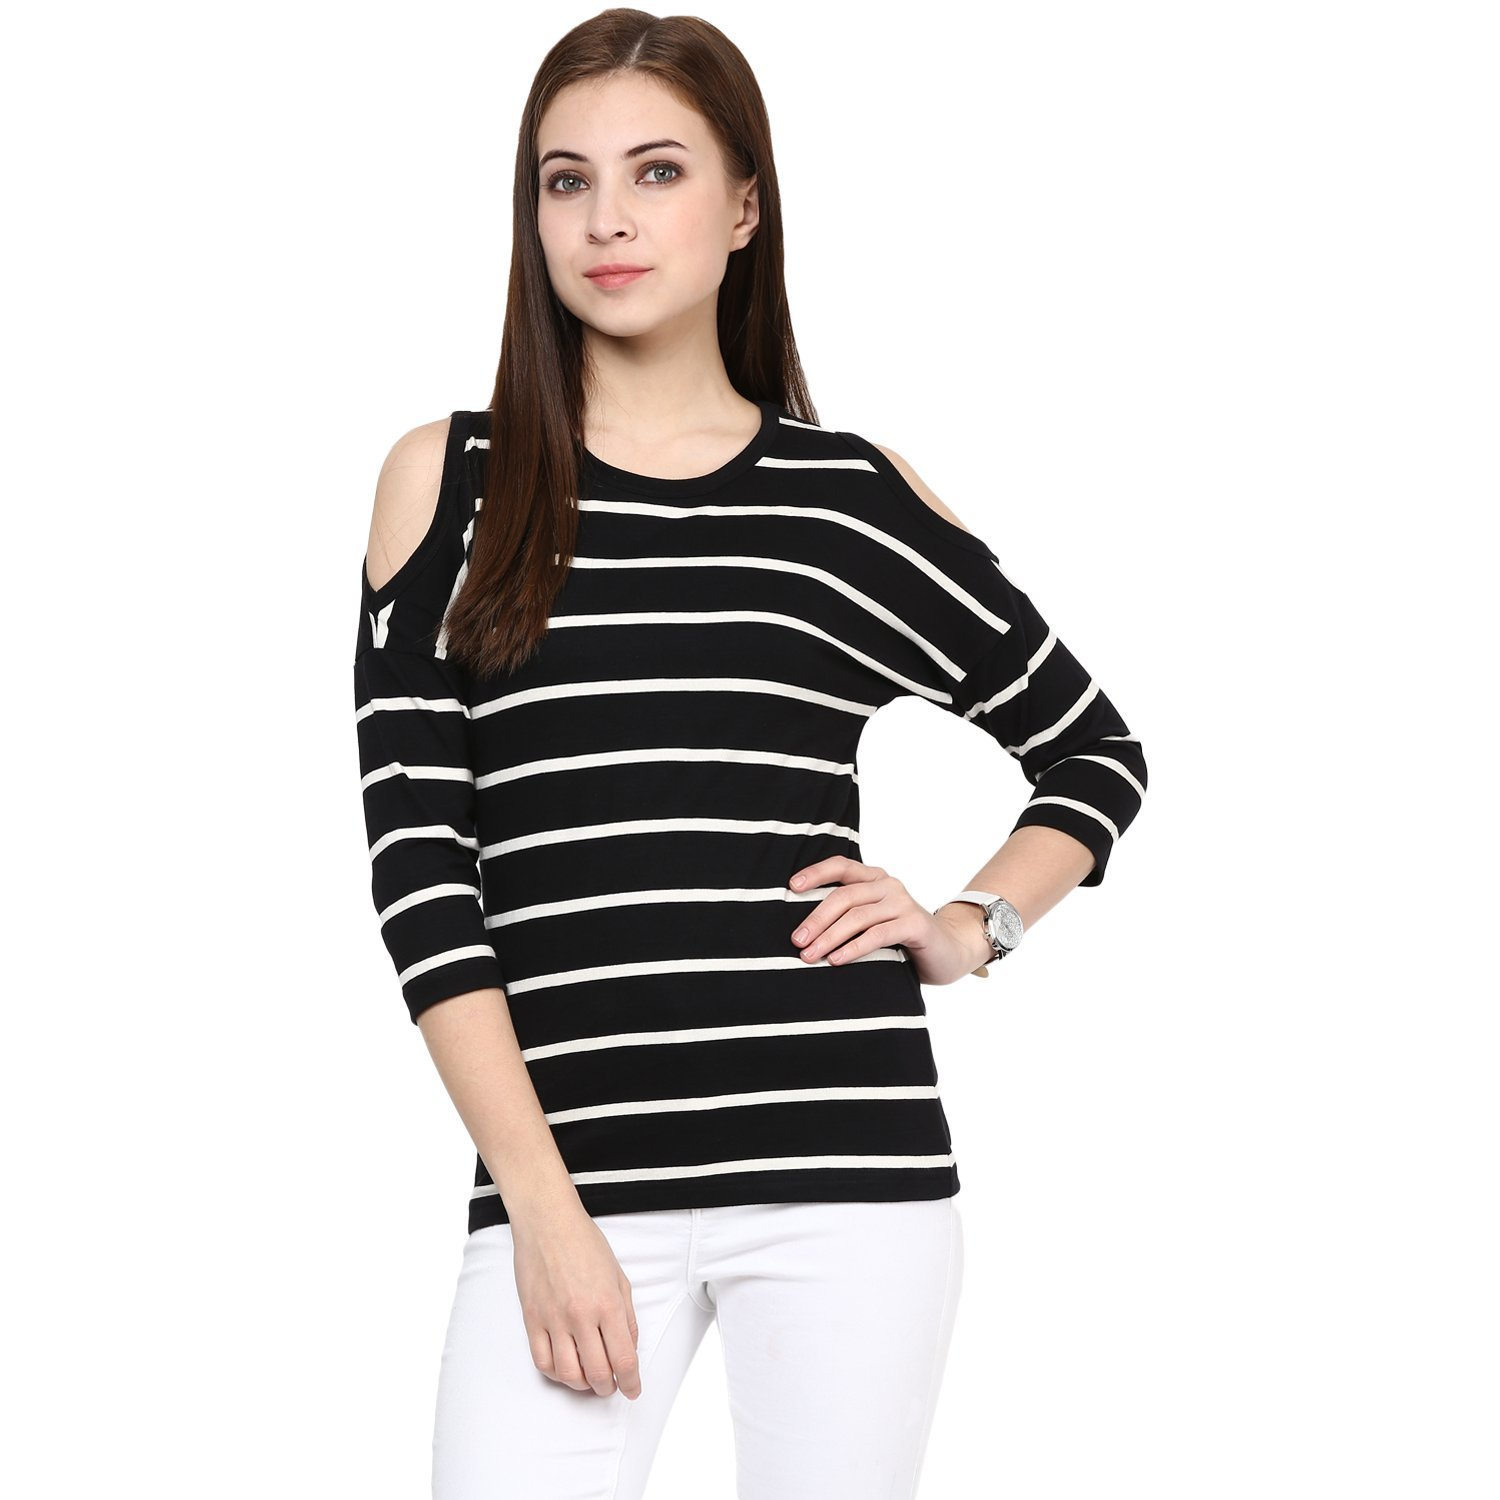 Black t shirt amazon - Hypernation Black And White Stripe Round Neck Cotton T Shirt For Women Amazon In Clothing Accessories